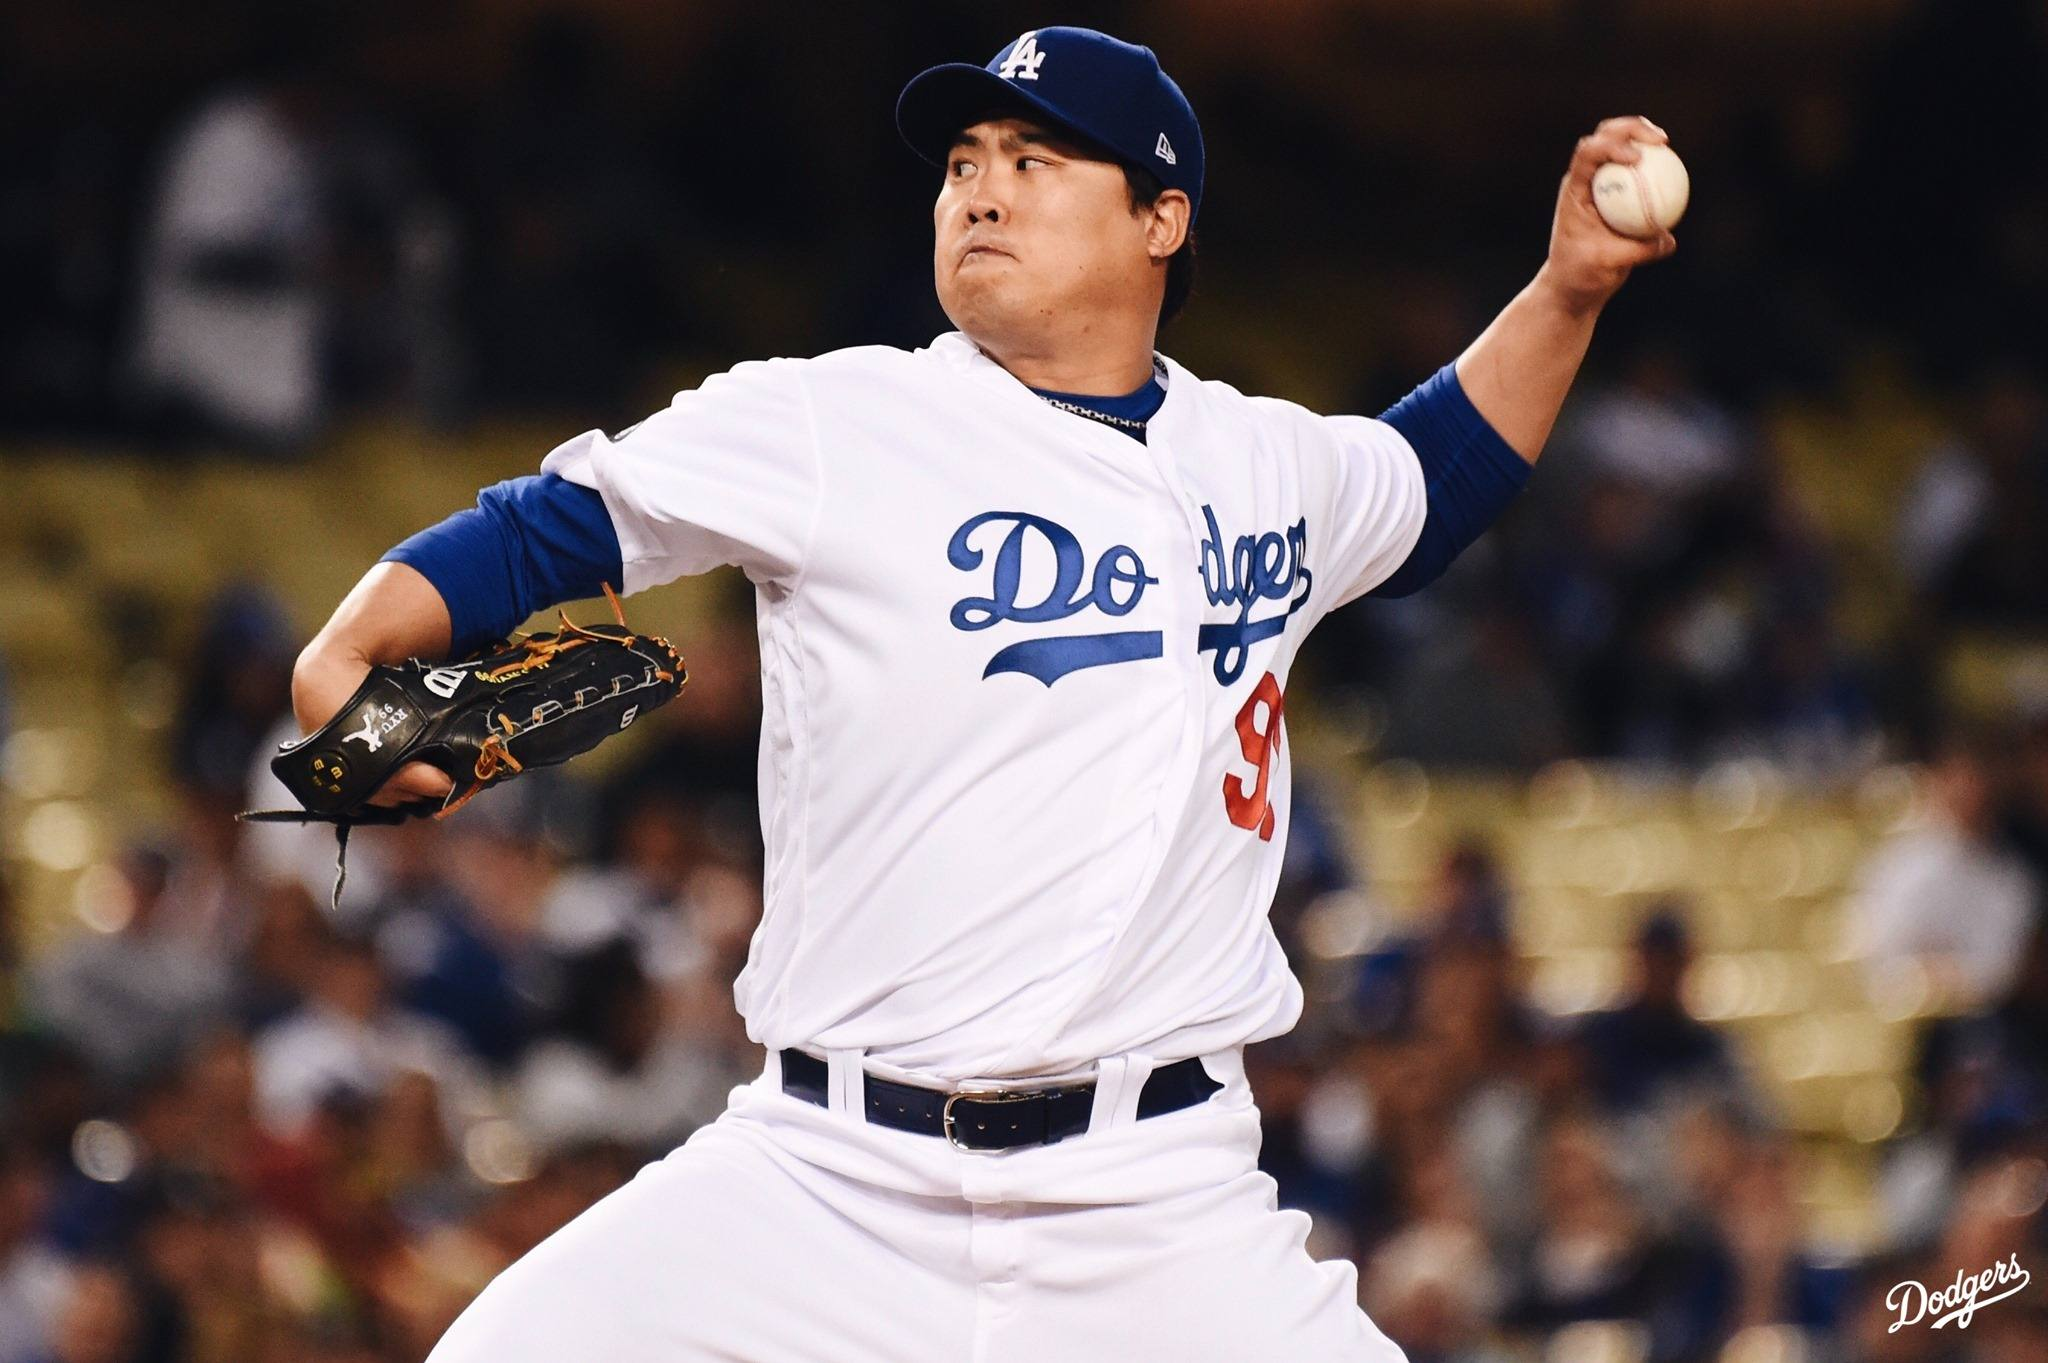 Los Angeles Dodgers pitcher Hyun-jin Ryu